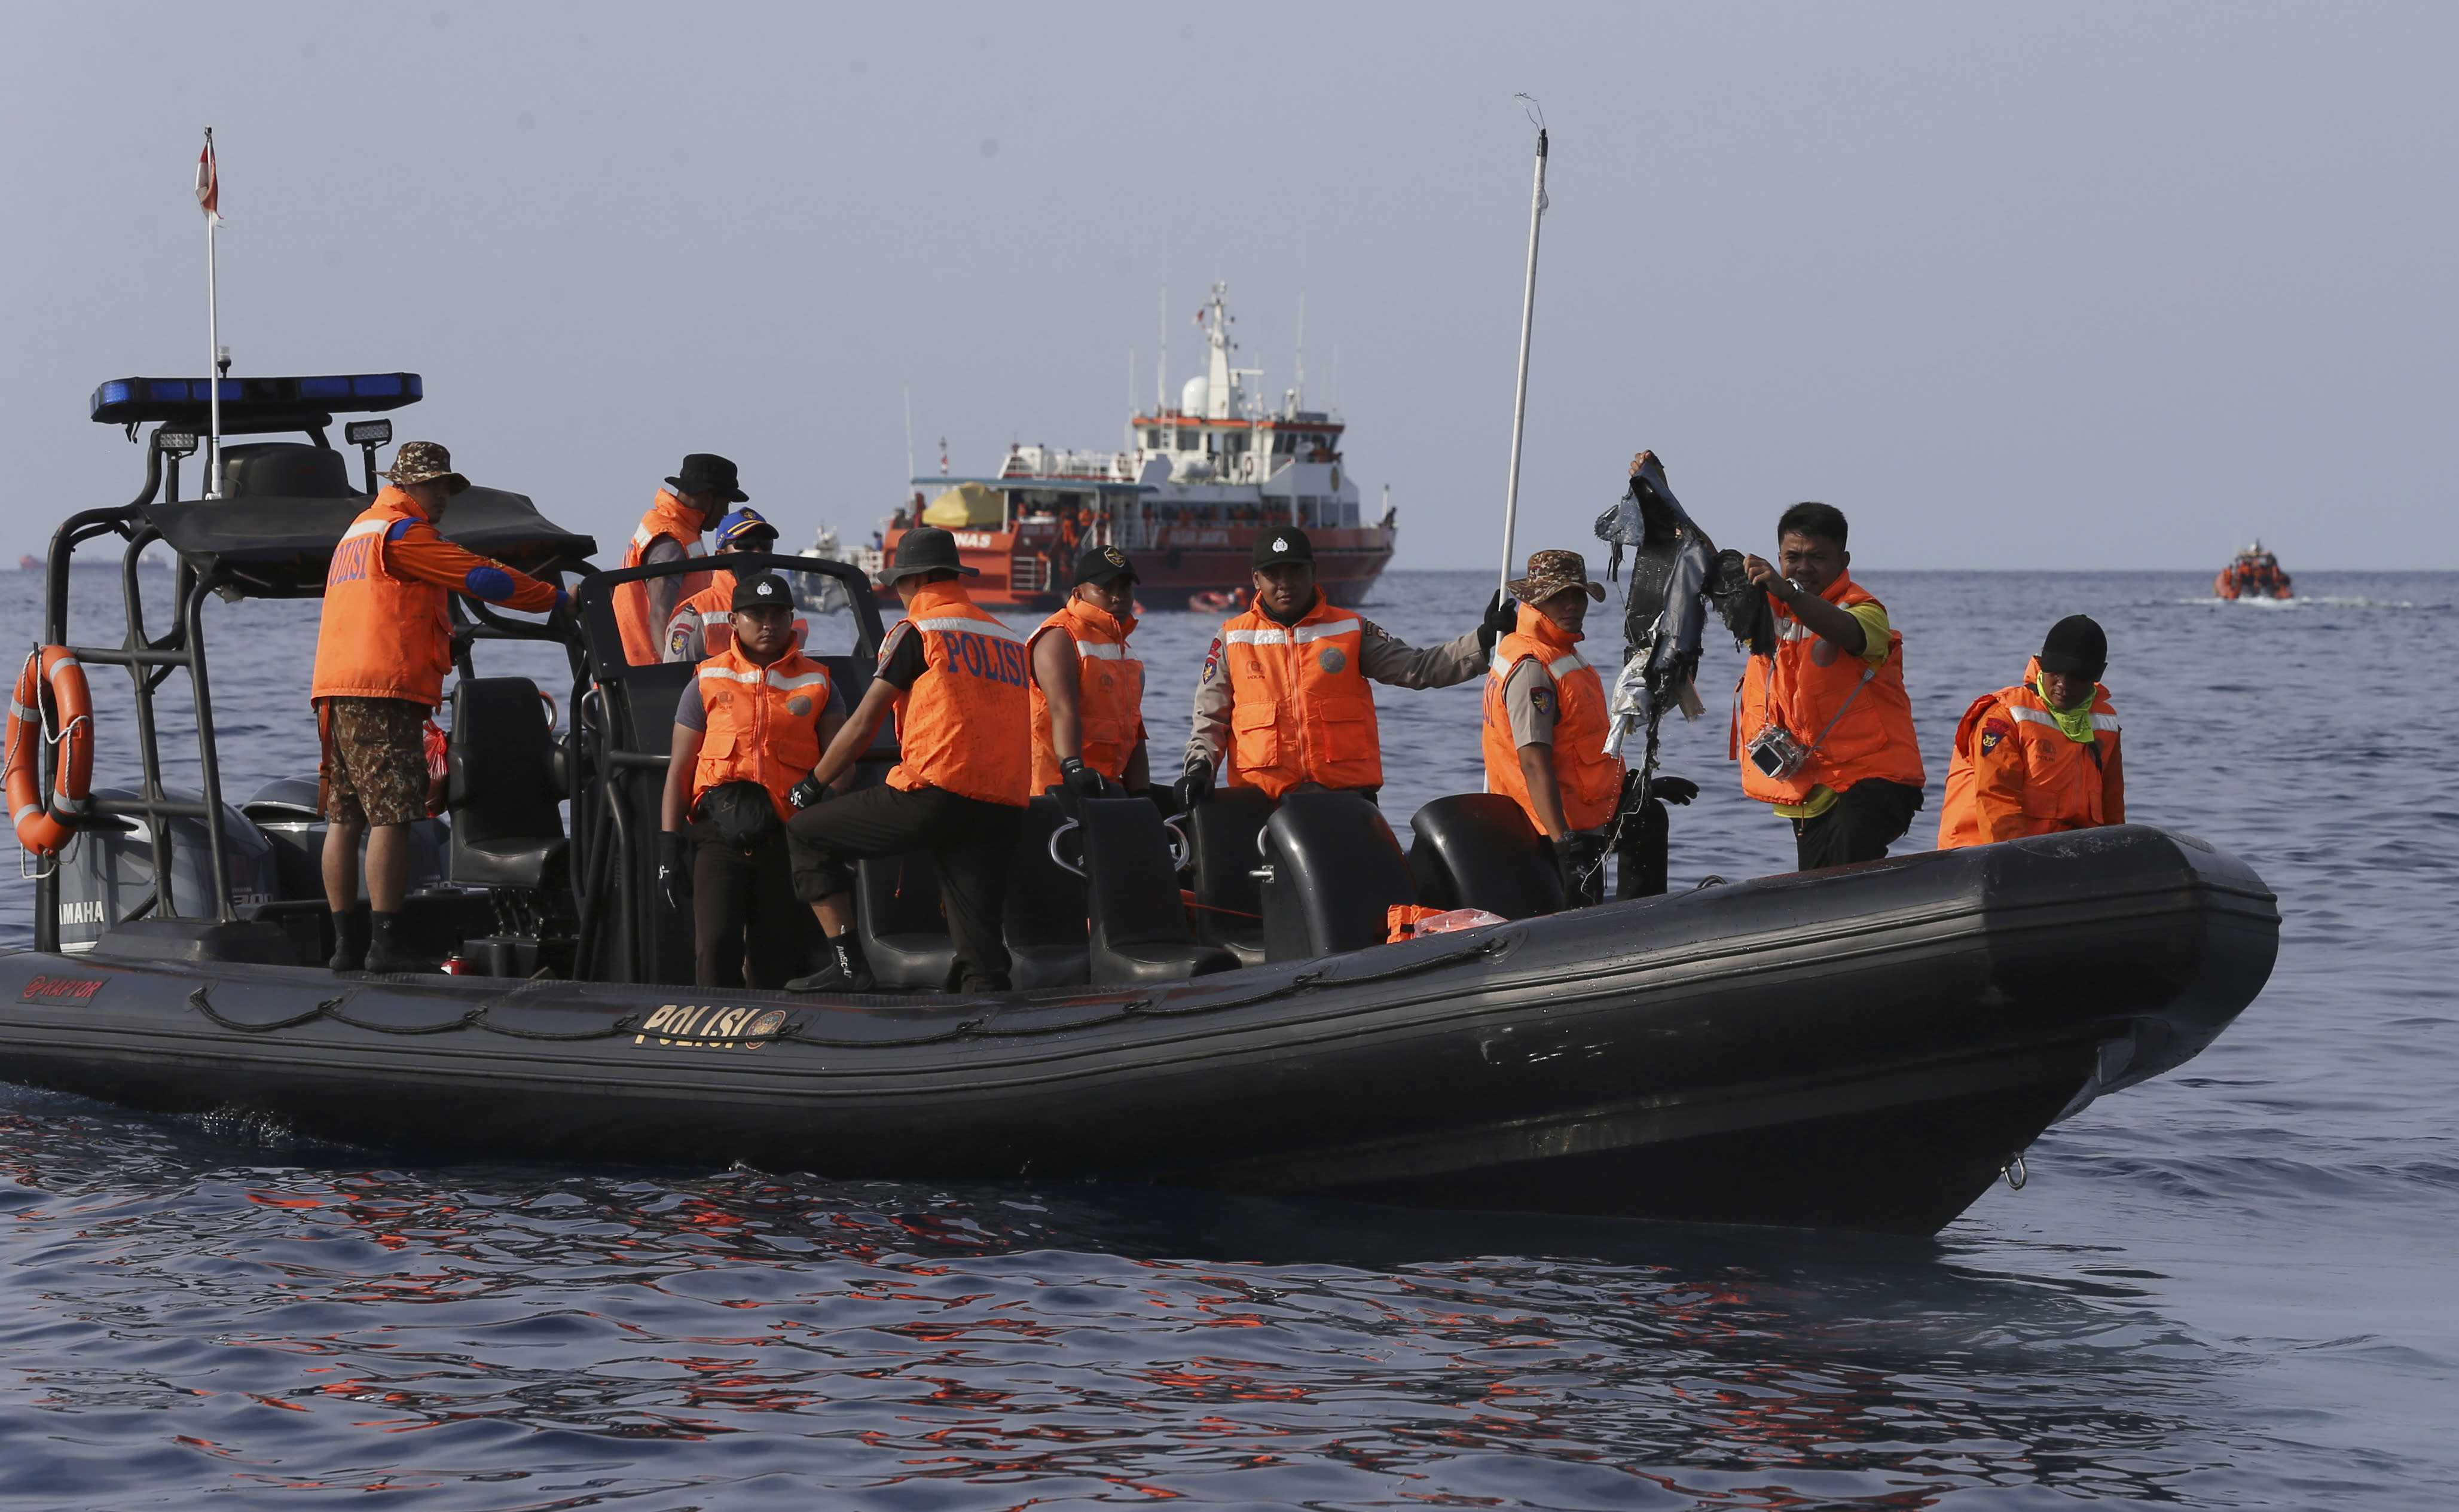 Rescuers conduct search operation in the waters of Ujung Karawang, West Java, Indonesia after a Lion Air plane crashed into the sea Monday, Oct. 29, 2018. A Lion Air flight crashed into the sea just minutes after taking off from Indonesia's capital on Monday in a blow to the country's aviation safety record after the lifting of bans on its airlines by the European Union and U.S. (AP Photo/Achmad Ibrahim)